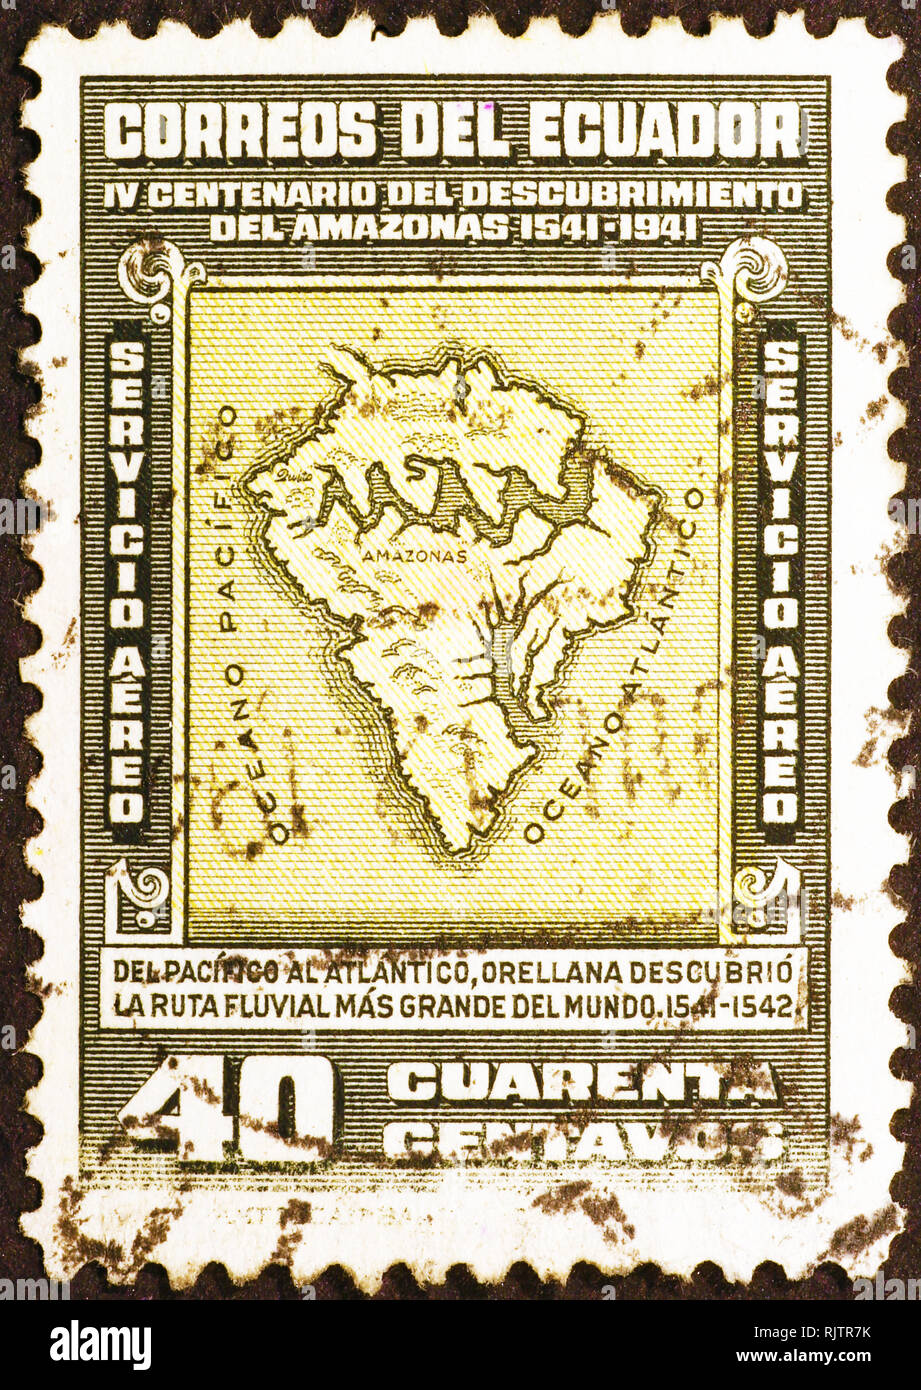 Ancient map of South America on old stamp - Stock Image